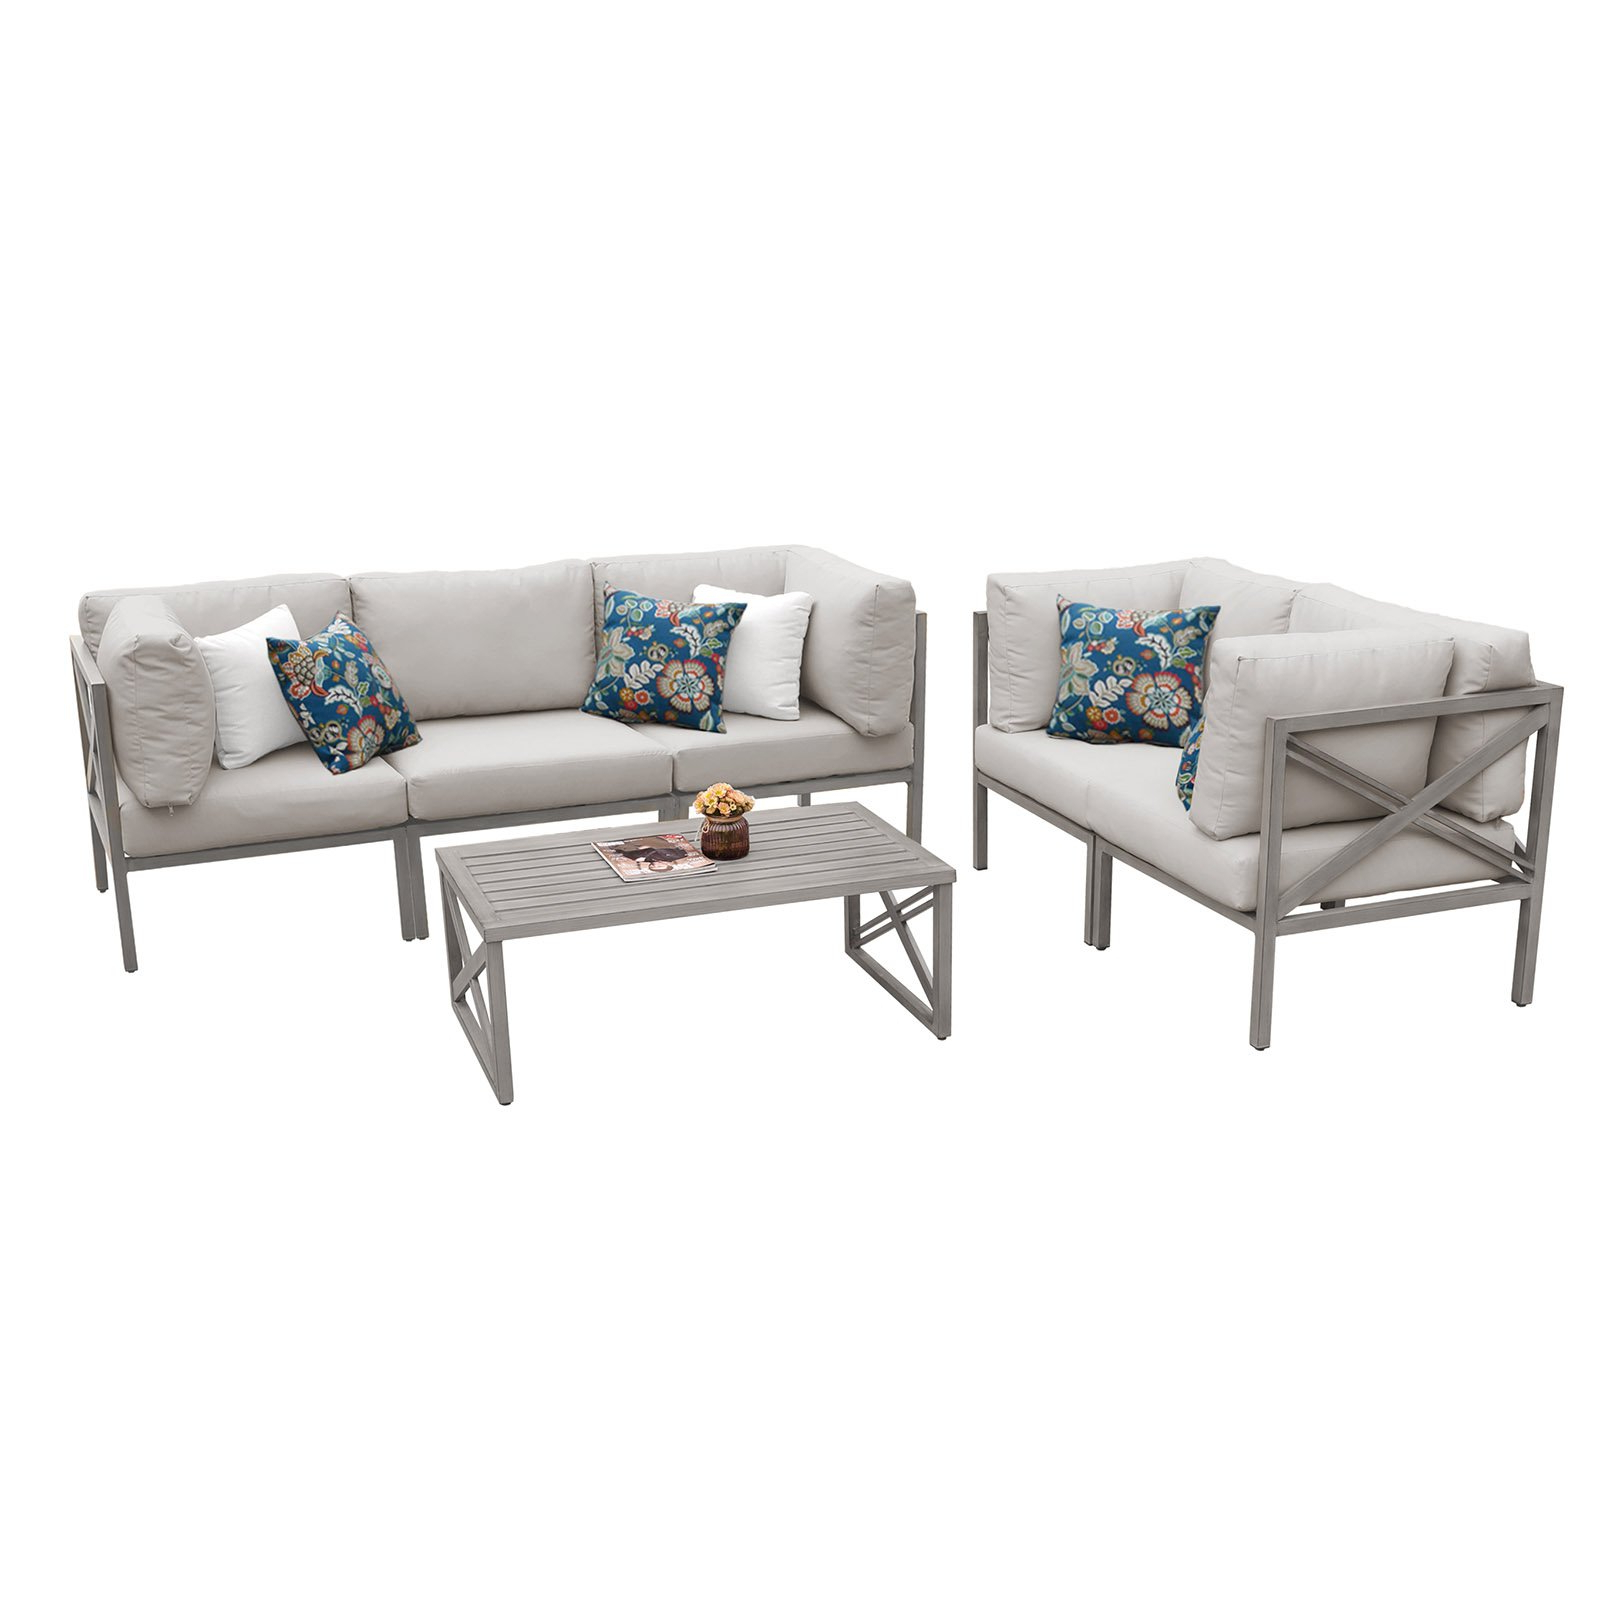 Famous Carlisle Patio Sofas With Cushions Intended For Outdoor Tk Classics Carlisle Aluminum 6 Piece Patio Sofa And (View 13 of 25)